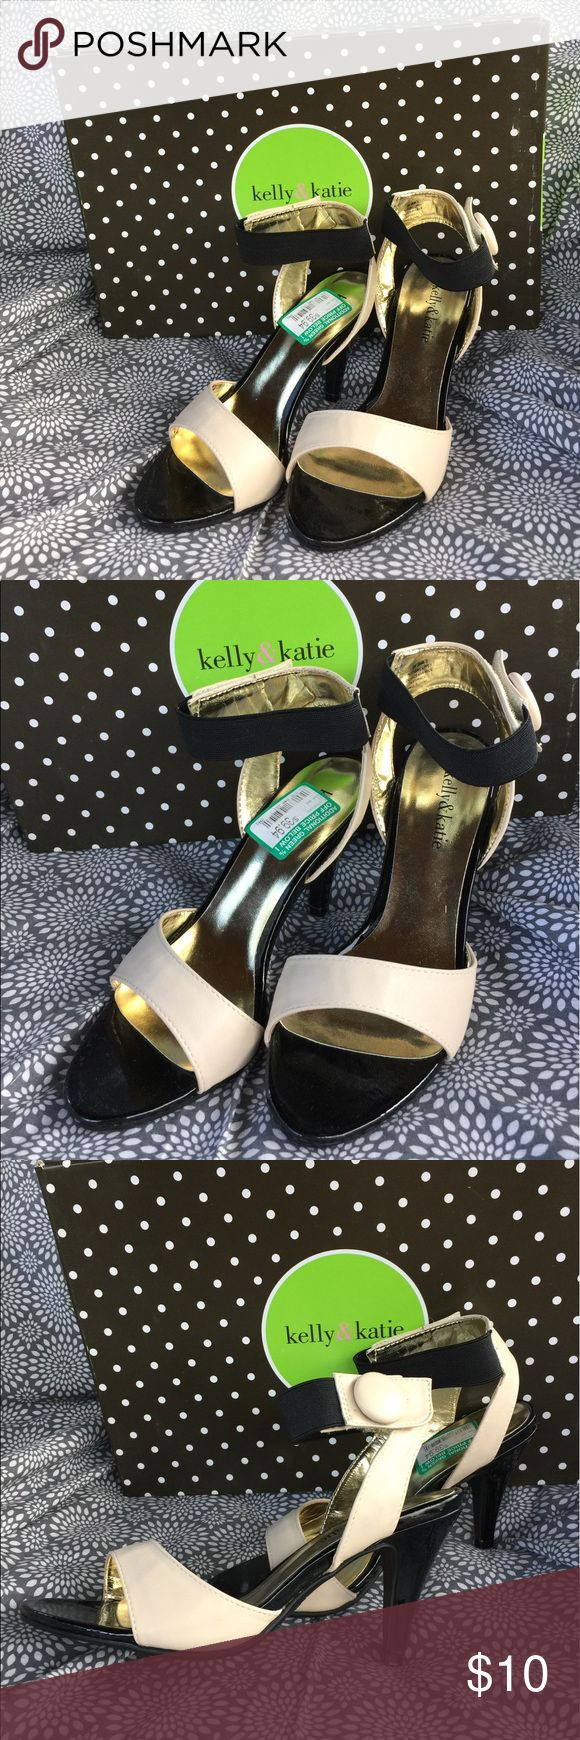 New Kelly & Katie Black & Cream High Heels Size 6 Kelly & Katie high heeled shoes in black n cream color.  Model name Jacqueline.  Size 6.  New never worn. Kelly & Katie Shoes Heels